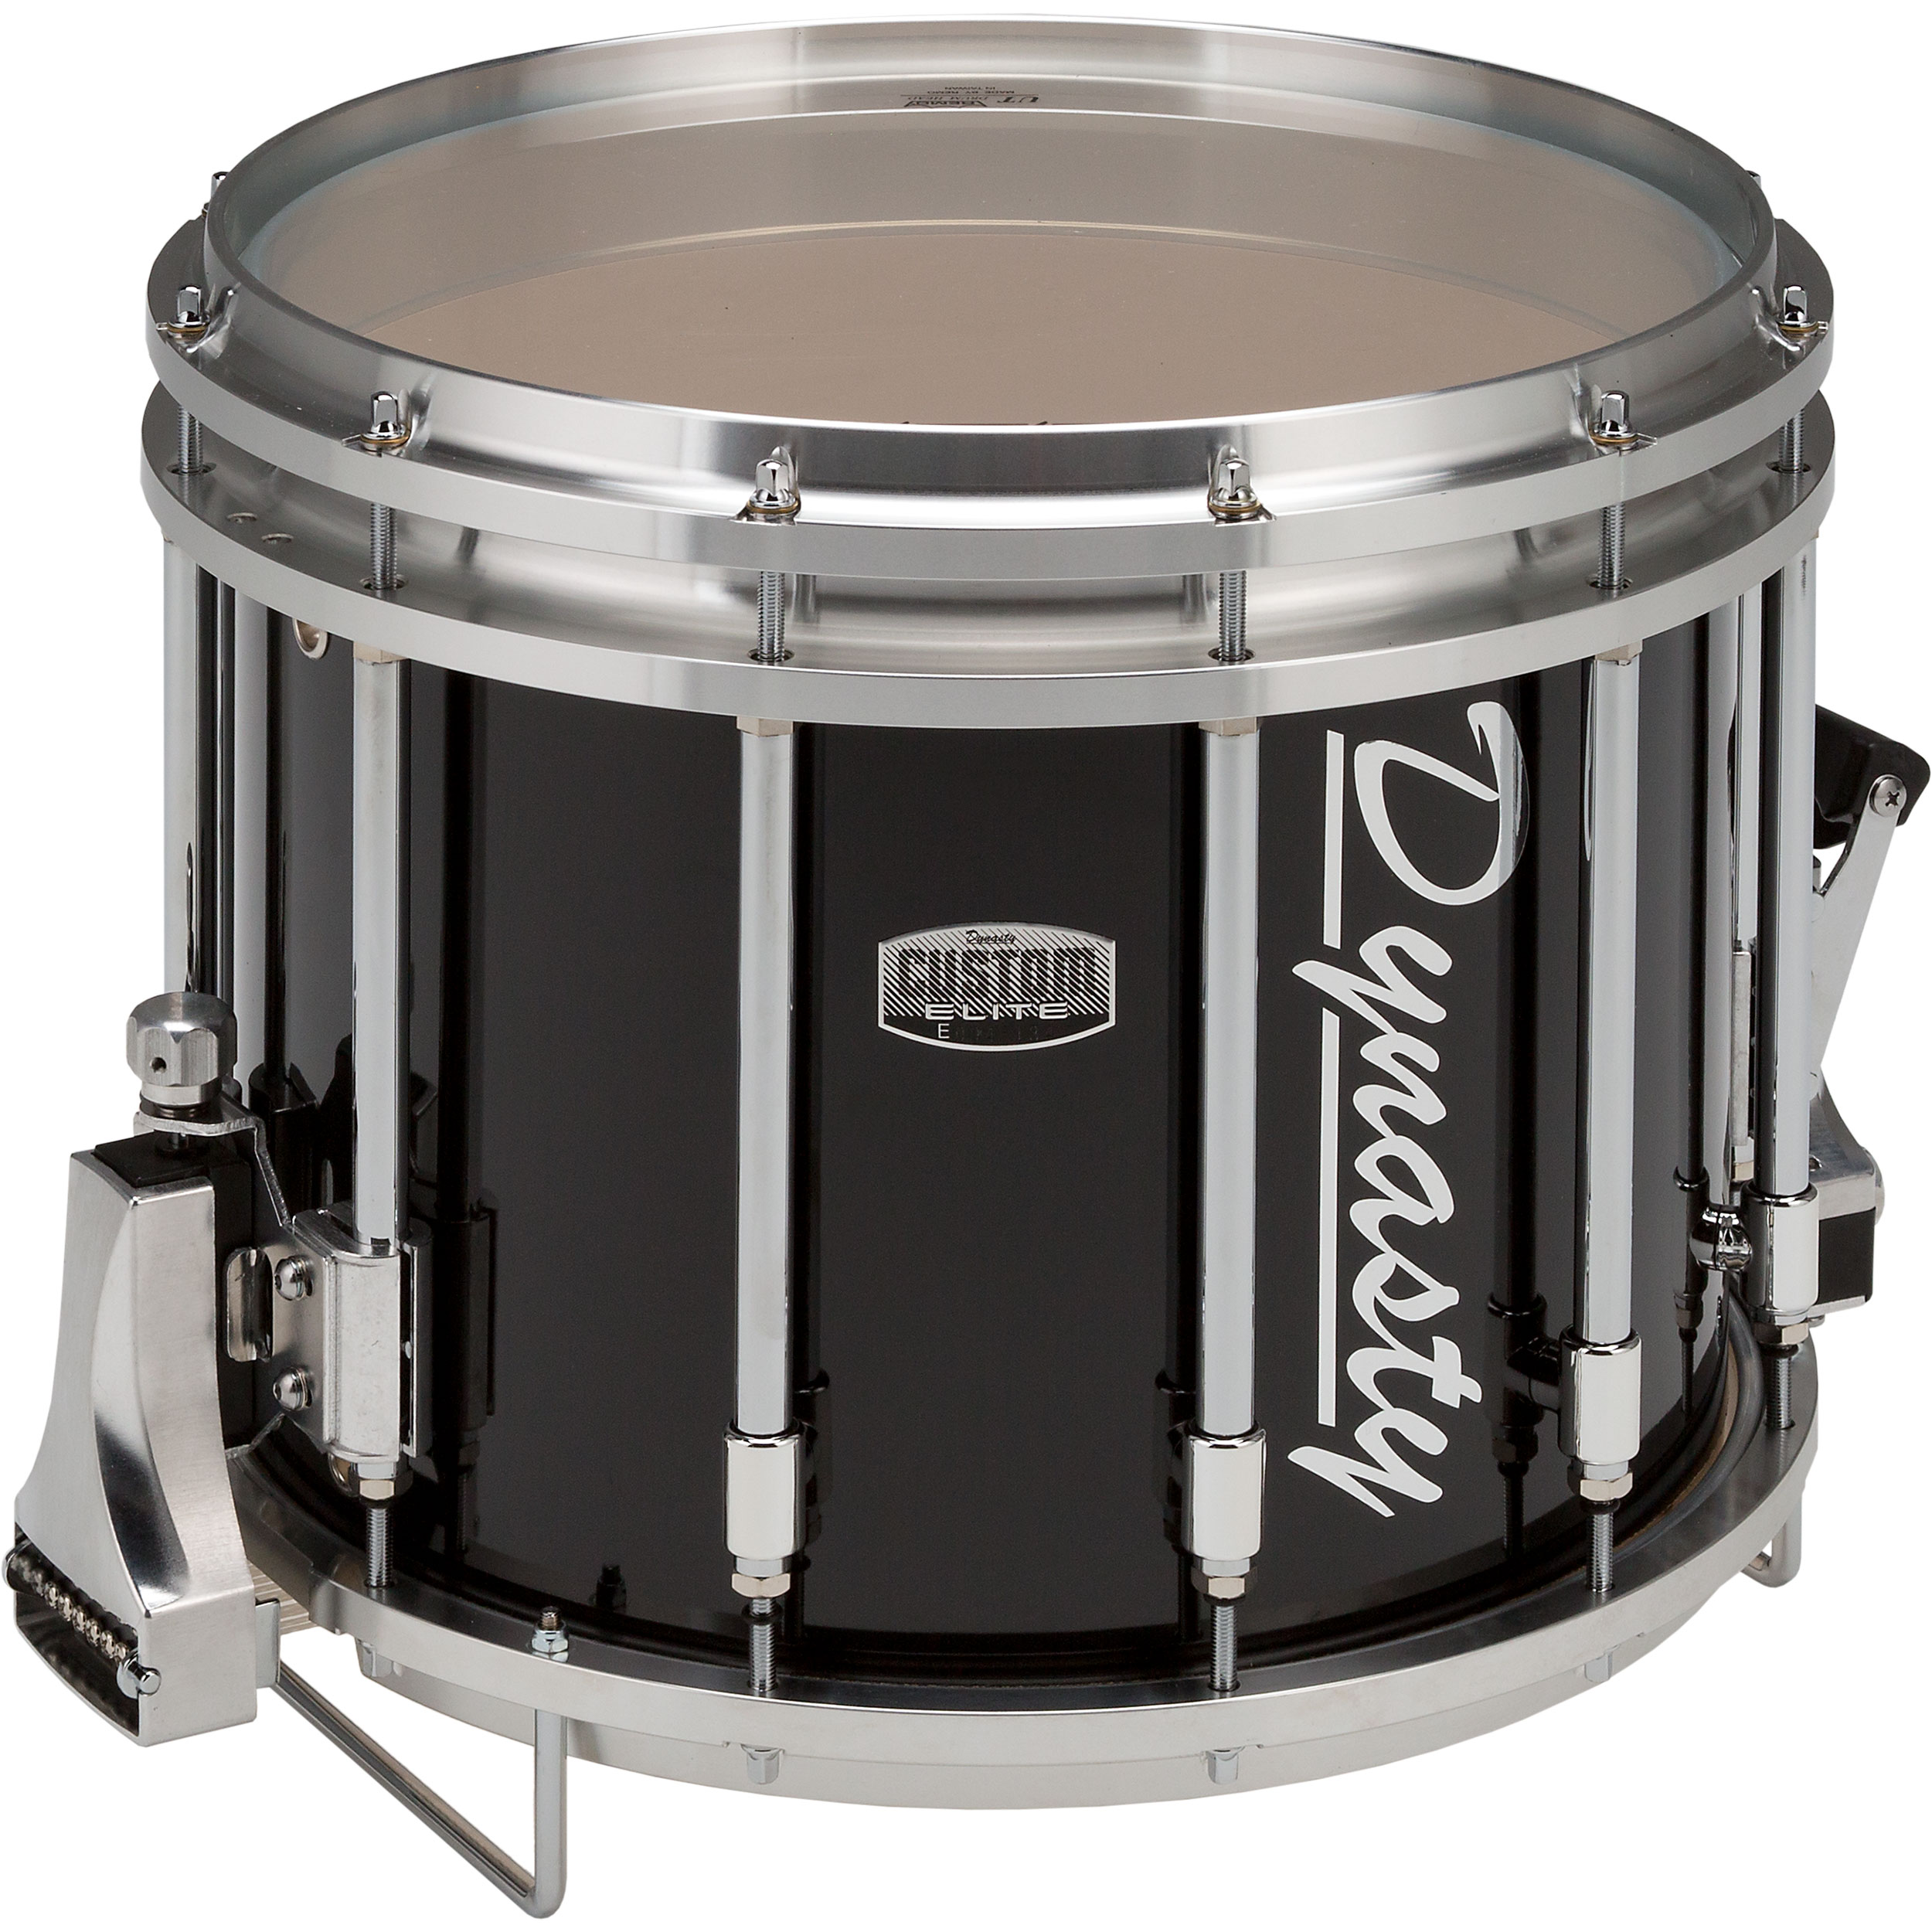 "Dynasty 14"" x 12"" Custom Elite DFZ Marching Snare Drum in Black with Chrome Hardware"